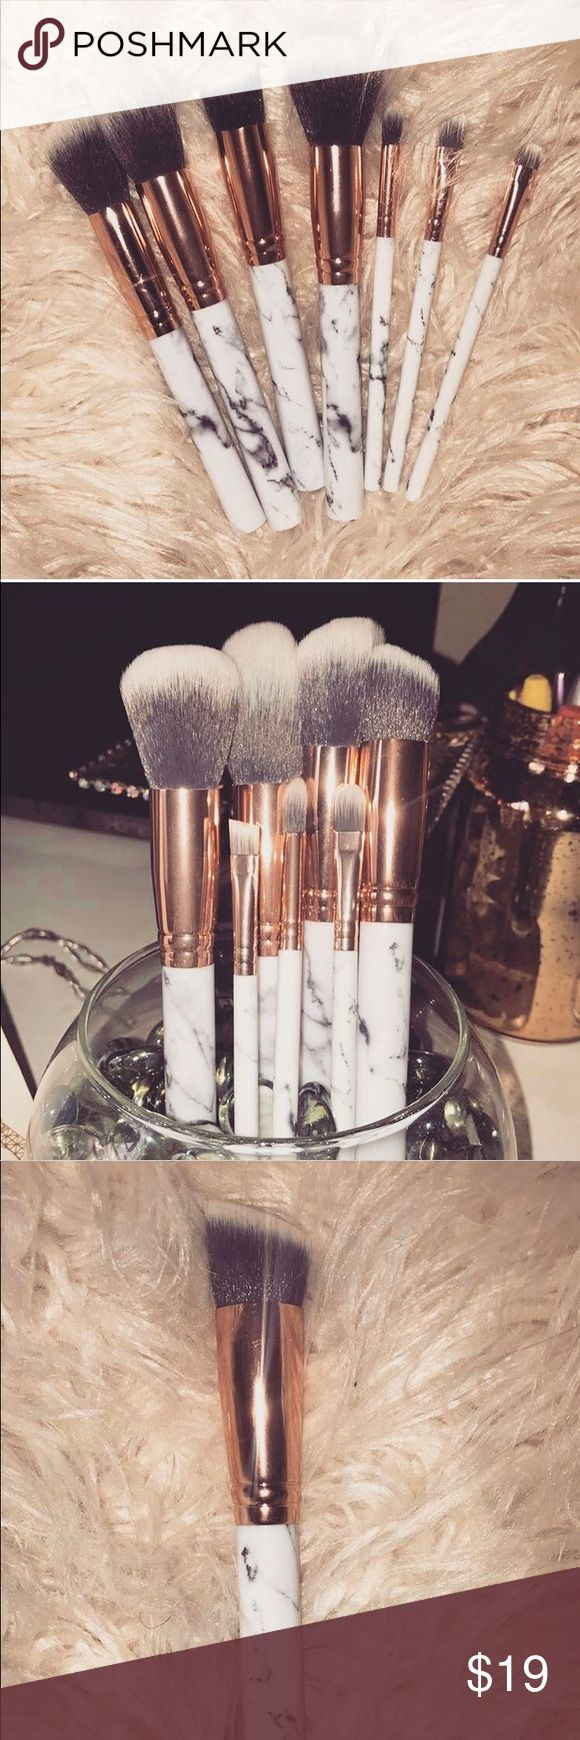 7 pc/set marbling makeup brushes cosmetics kit -Perfect for use and eye candy de…